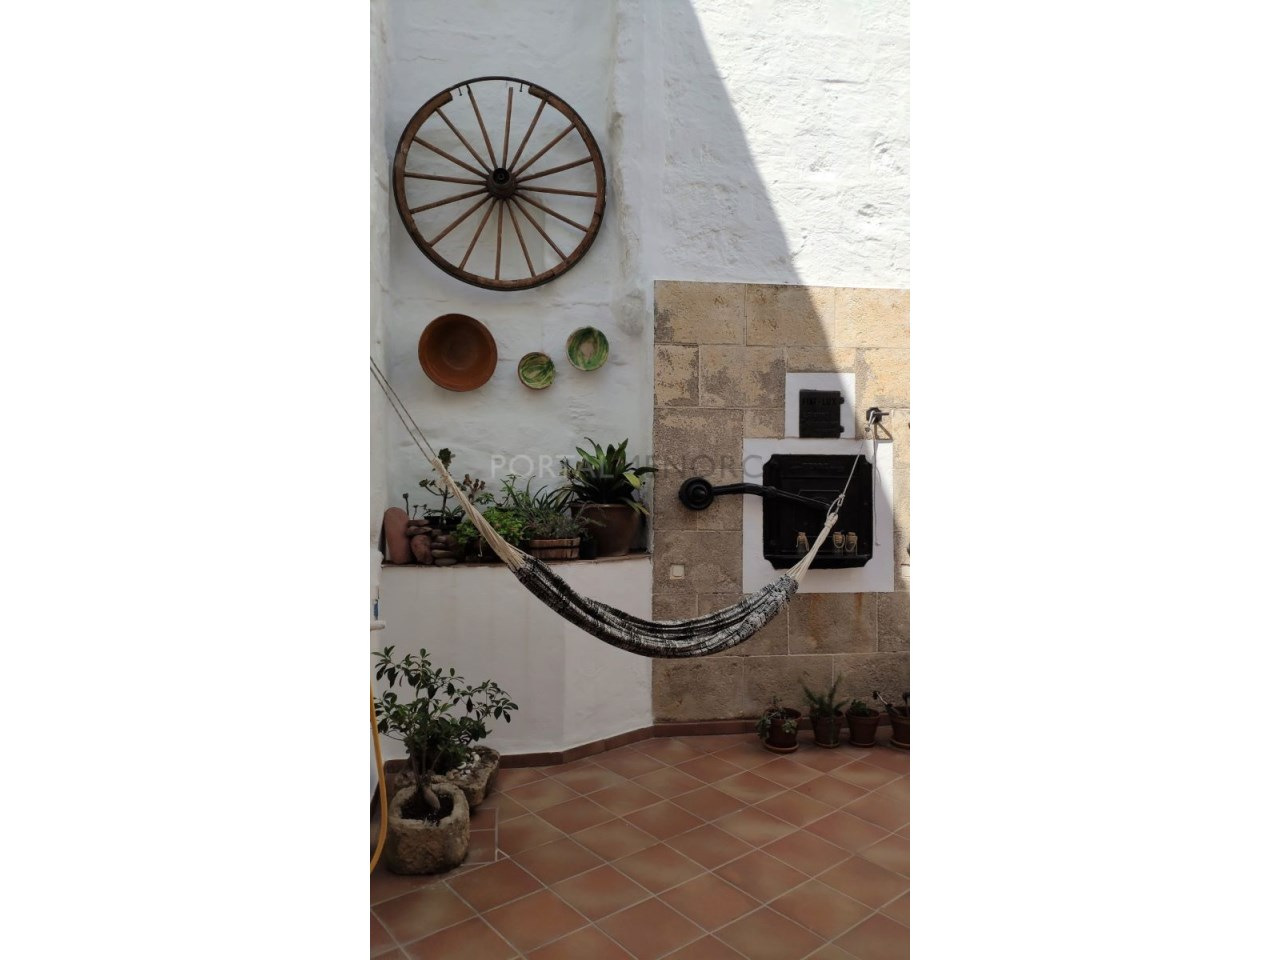 House for sale in the old town of Ciutadella-yard